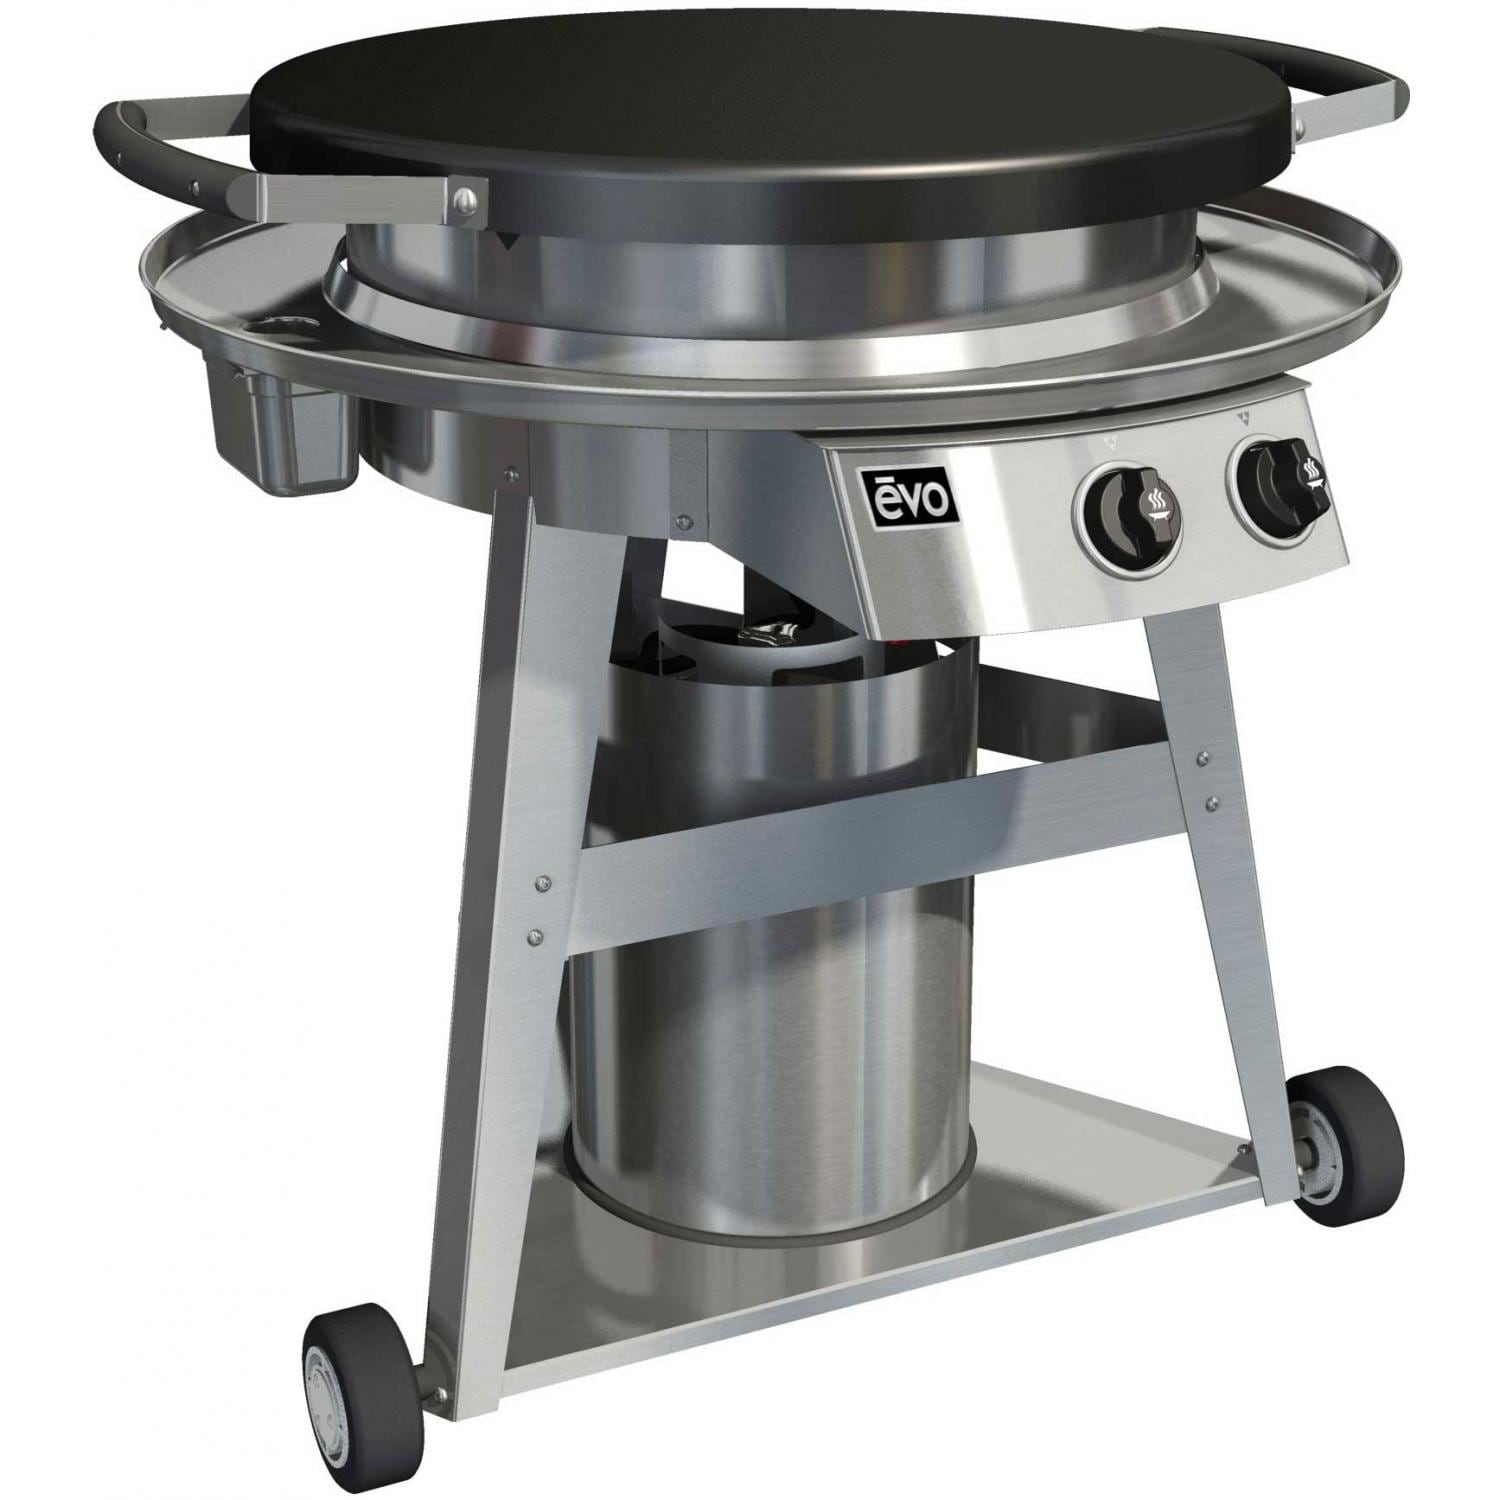 Evo Professional Classic Wheeled Cart Flattop Propane Gas Grill